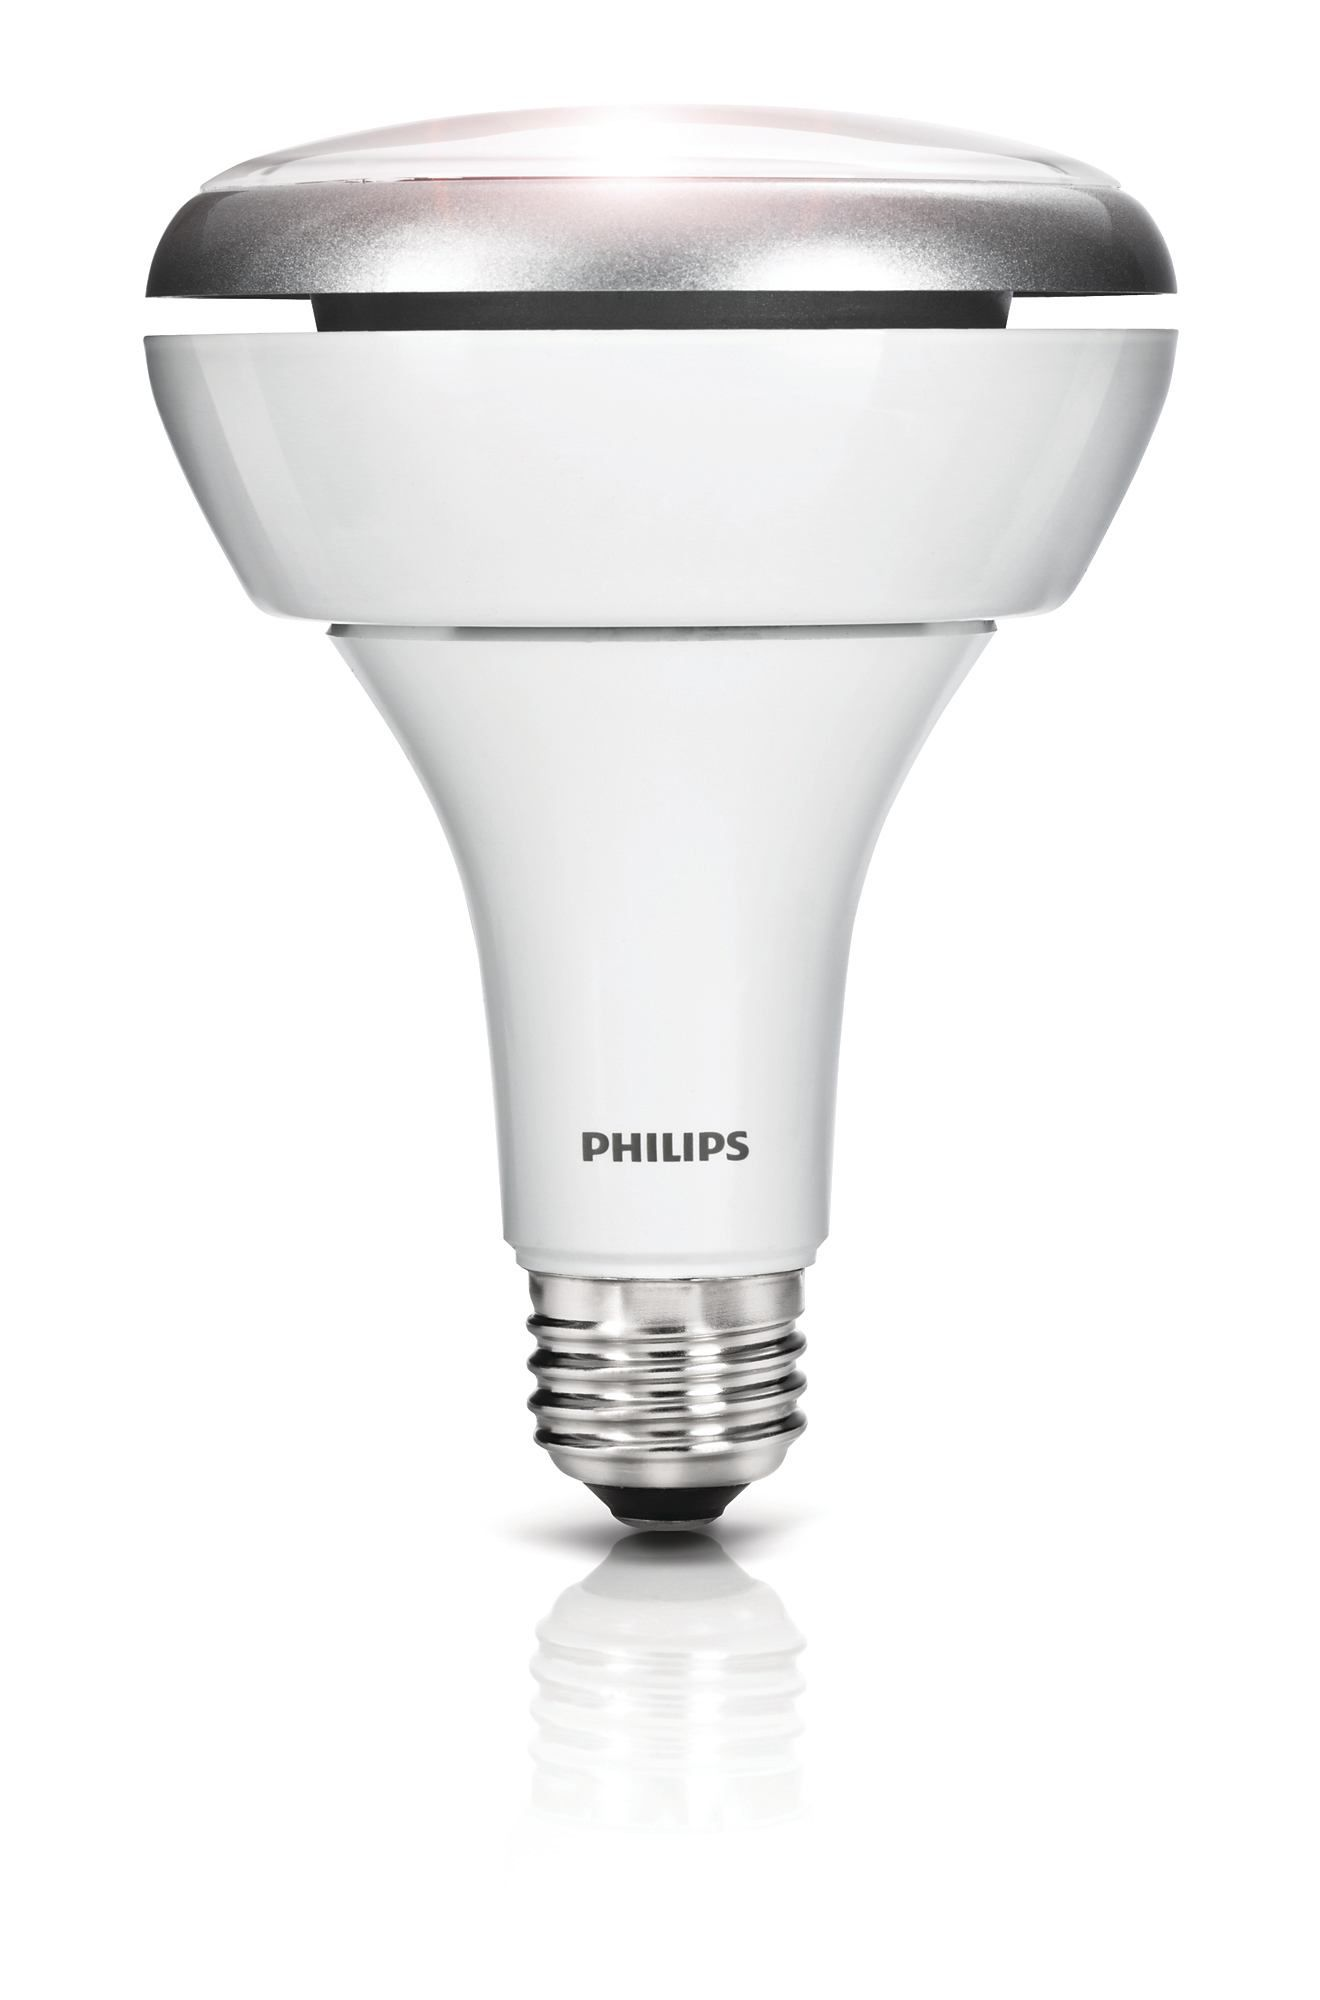 Want One Less Annoying Chore To Do Like Changing Burned Out Light Bulbs It S Time To Switch To Led S You Have Led Flood Lights Led Light Bulb Philips Led